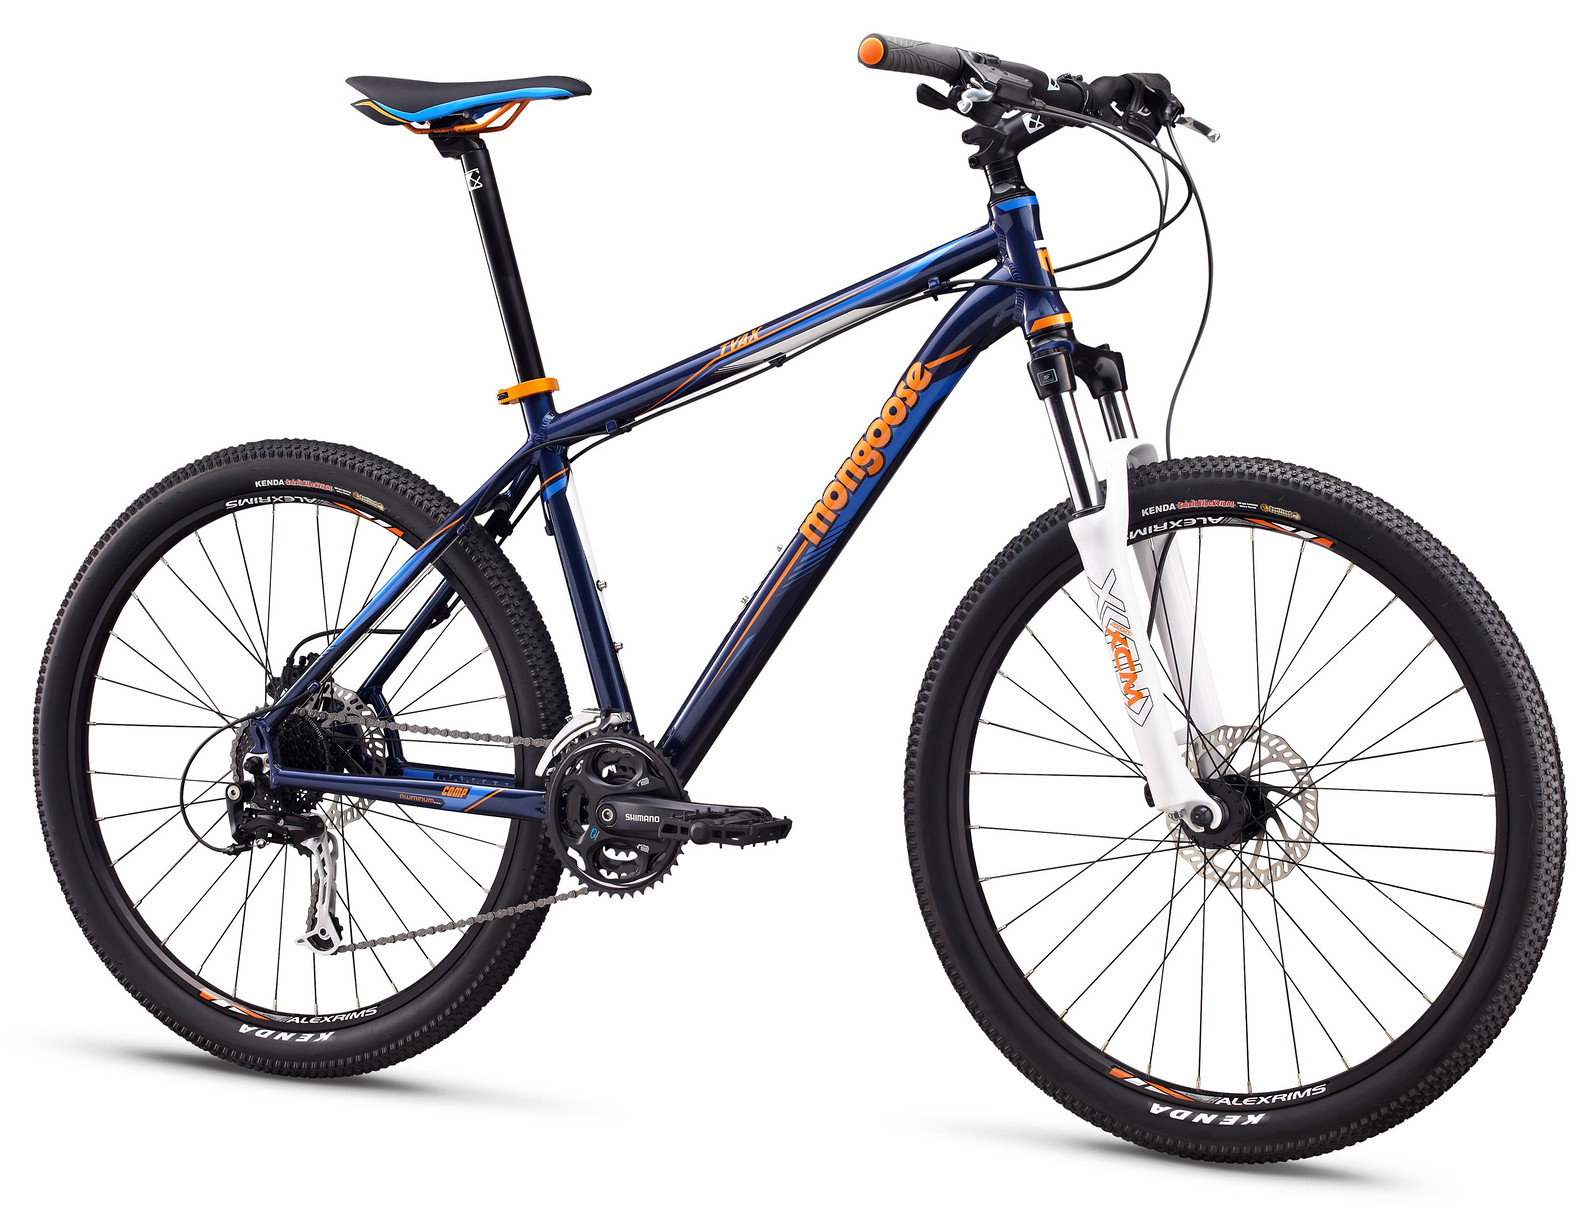 2014 Mongoose Tyax Comp Bike